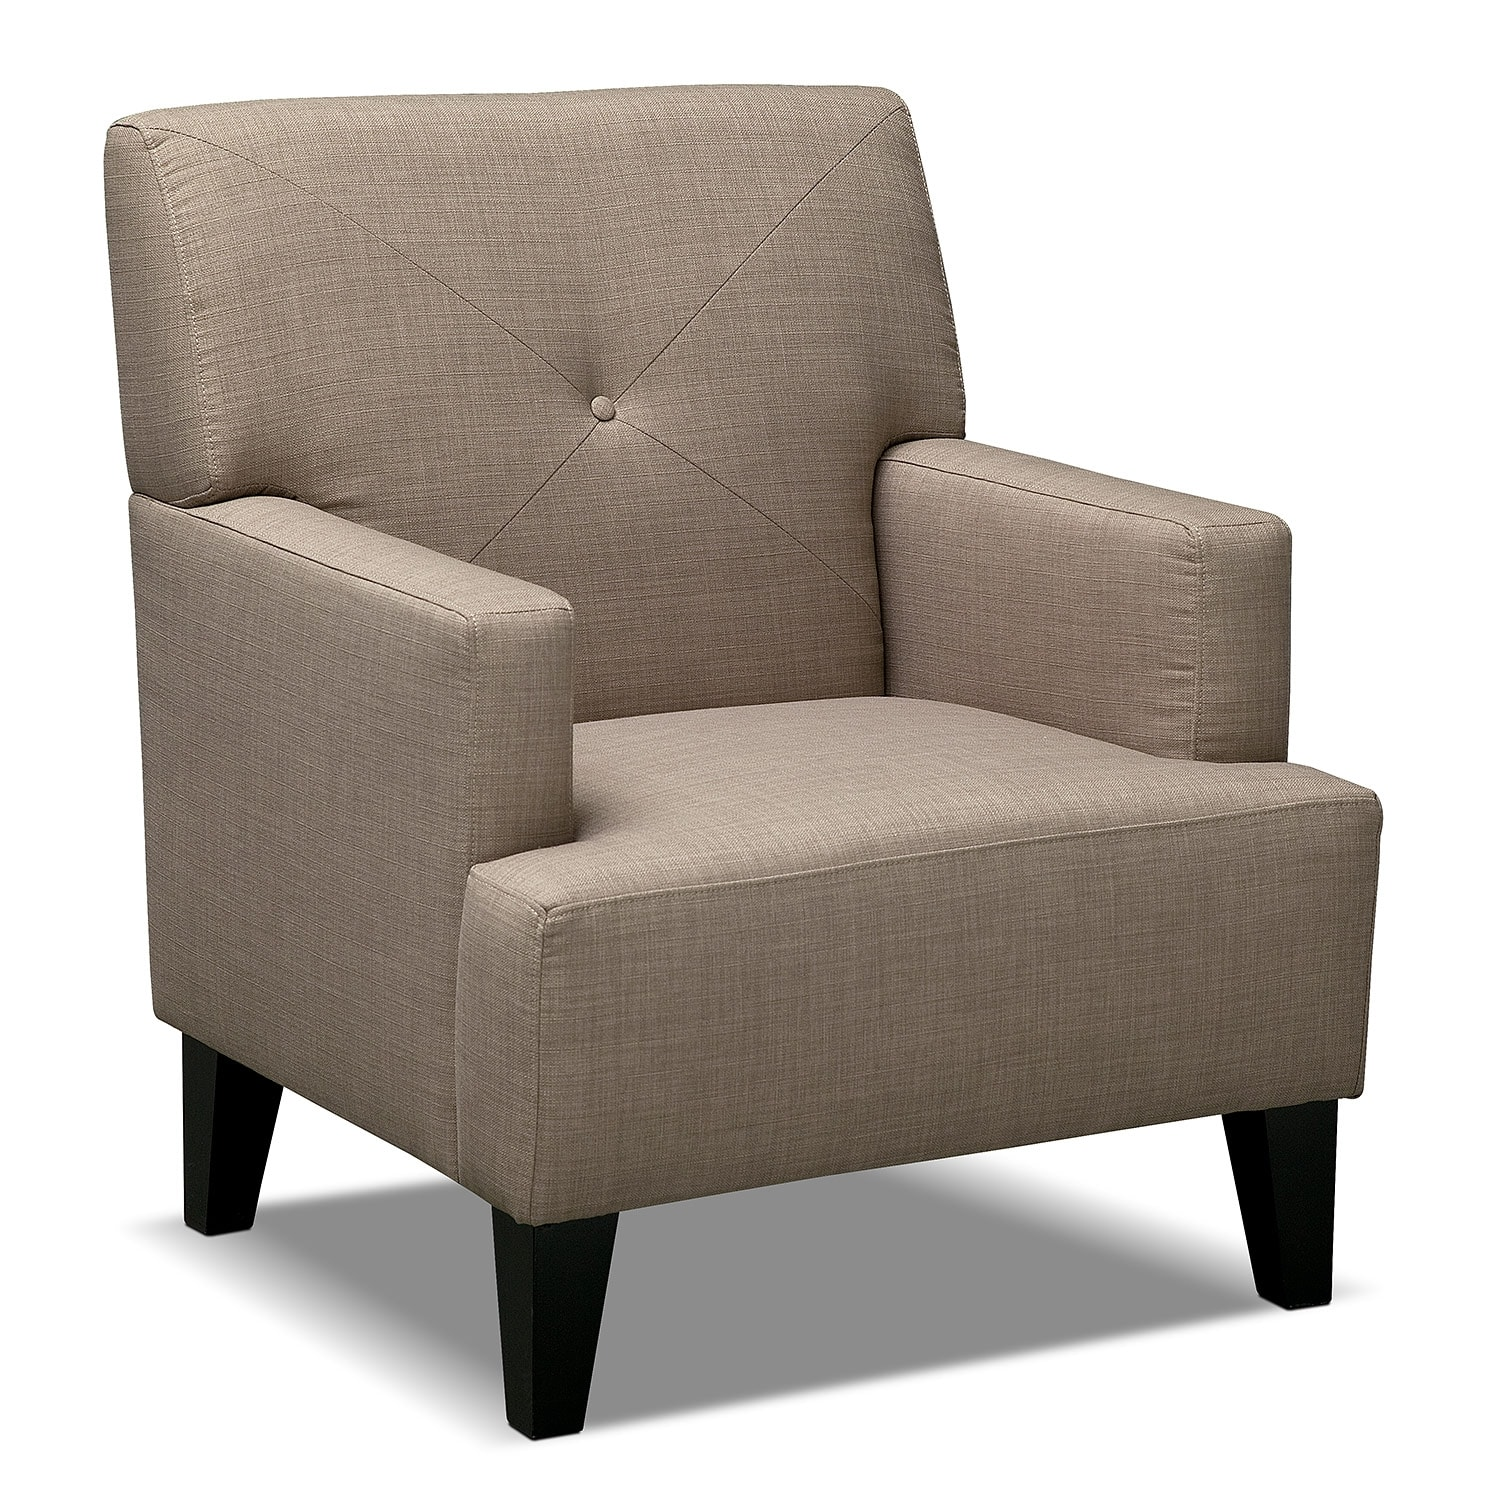 avalon accent chair wheat value city furniture. Black Bedroom Furniture Sets. Home Design Ideas